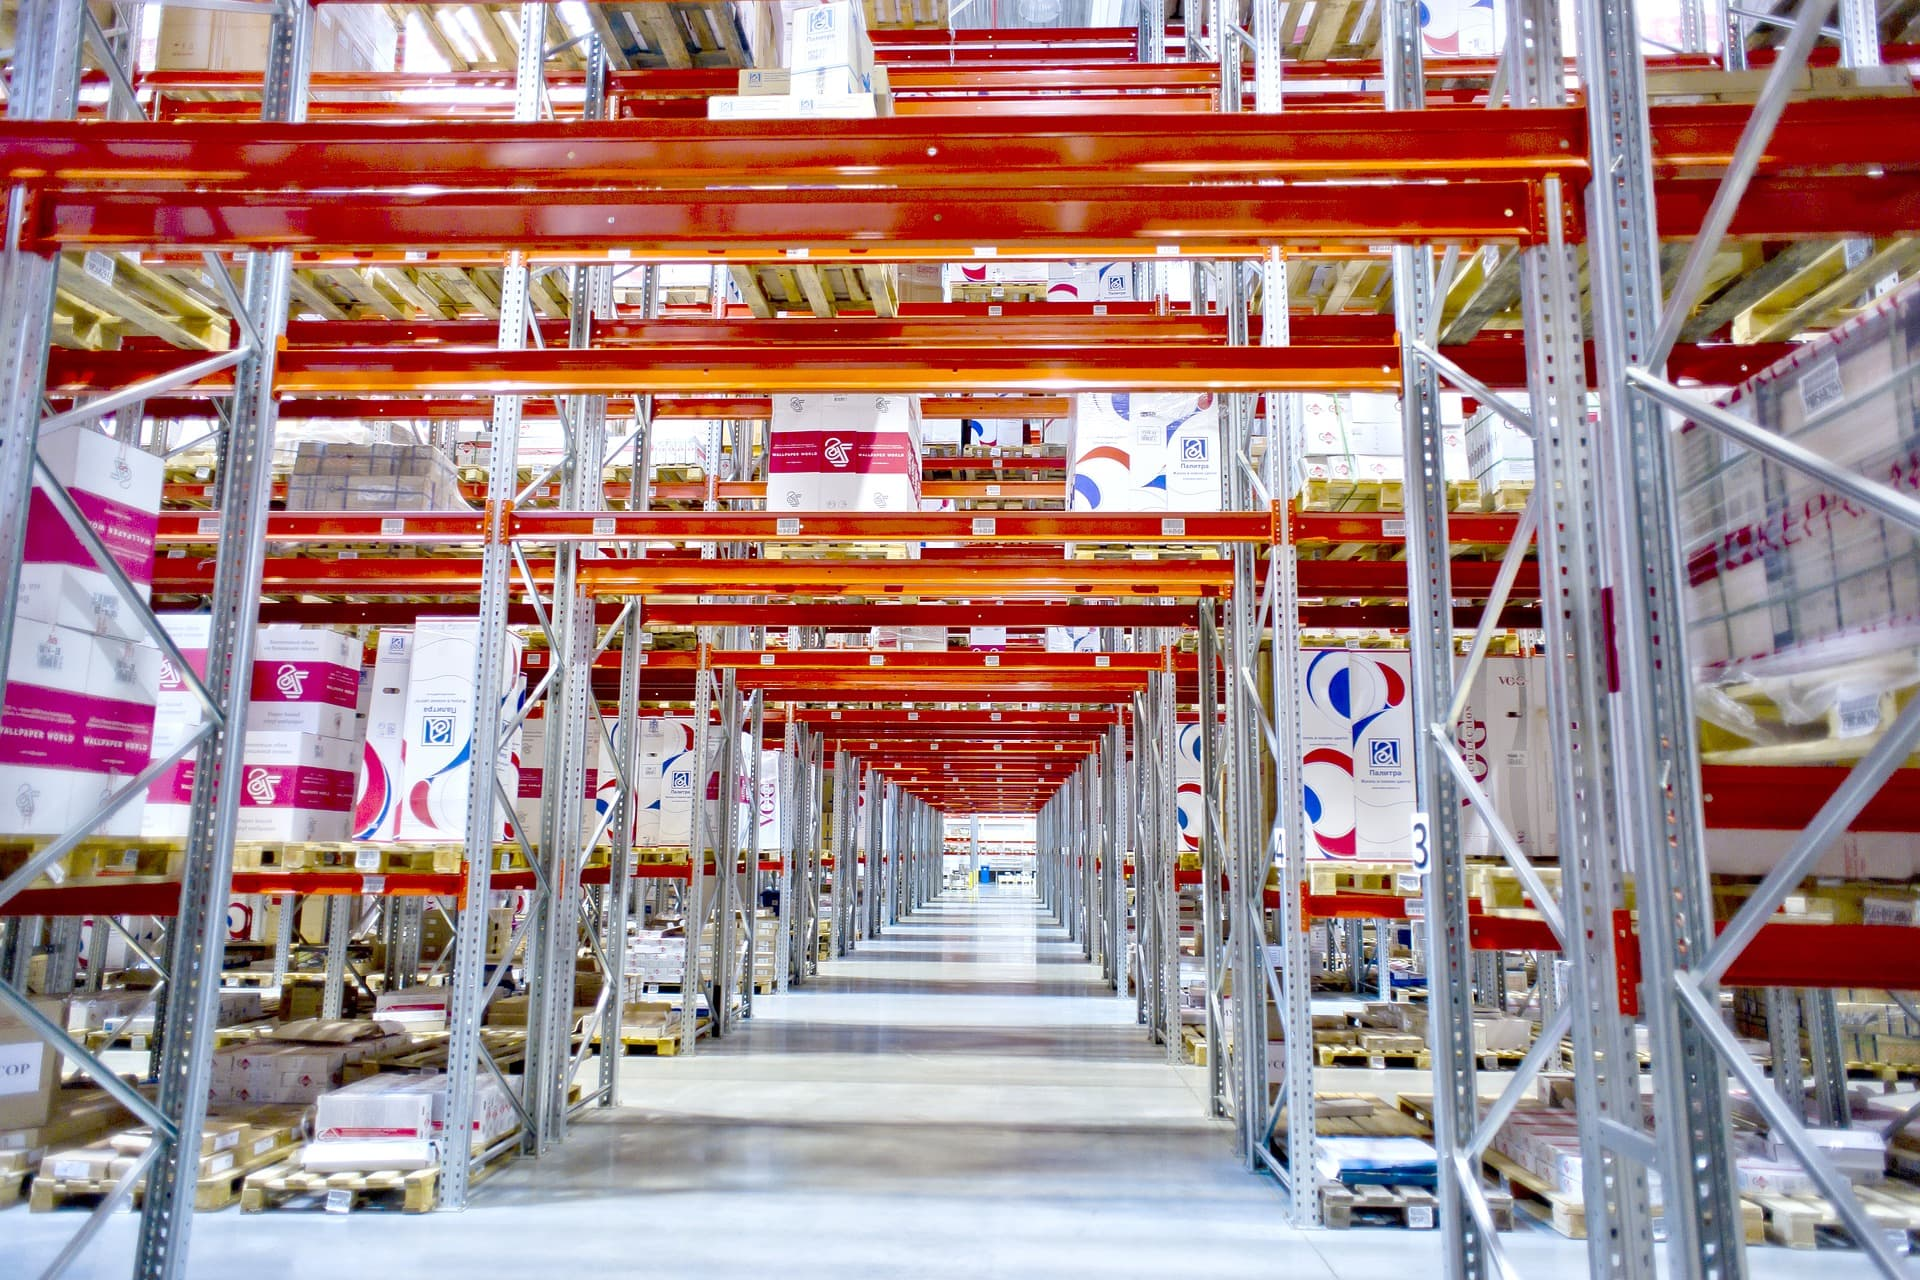 Benefits of RFID in stock management